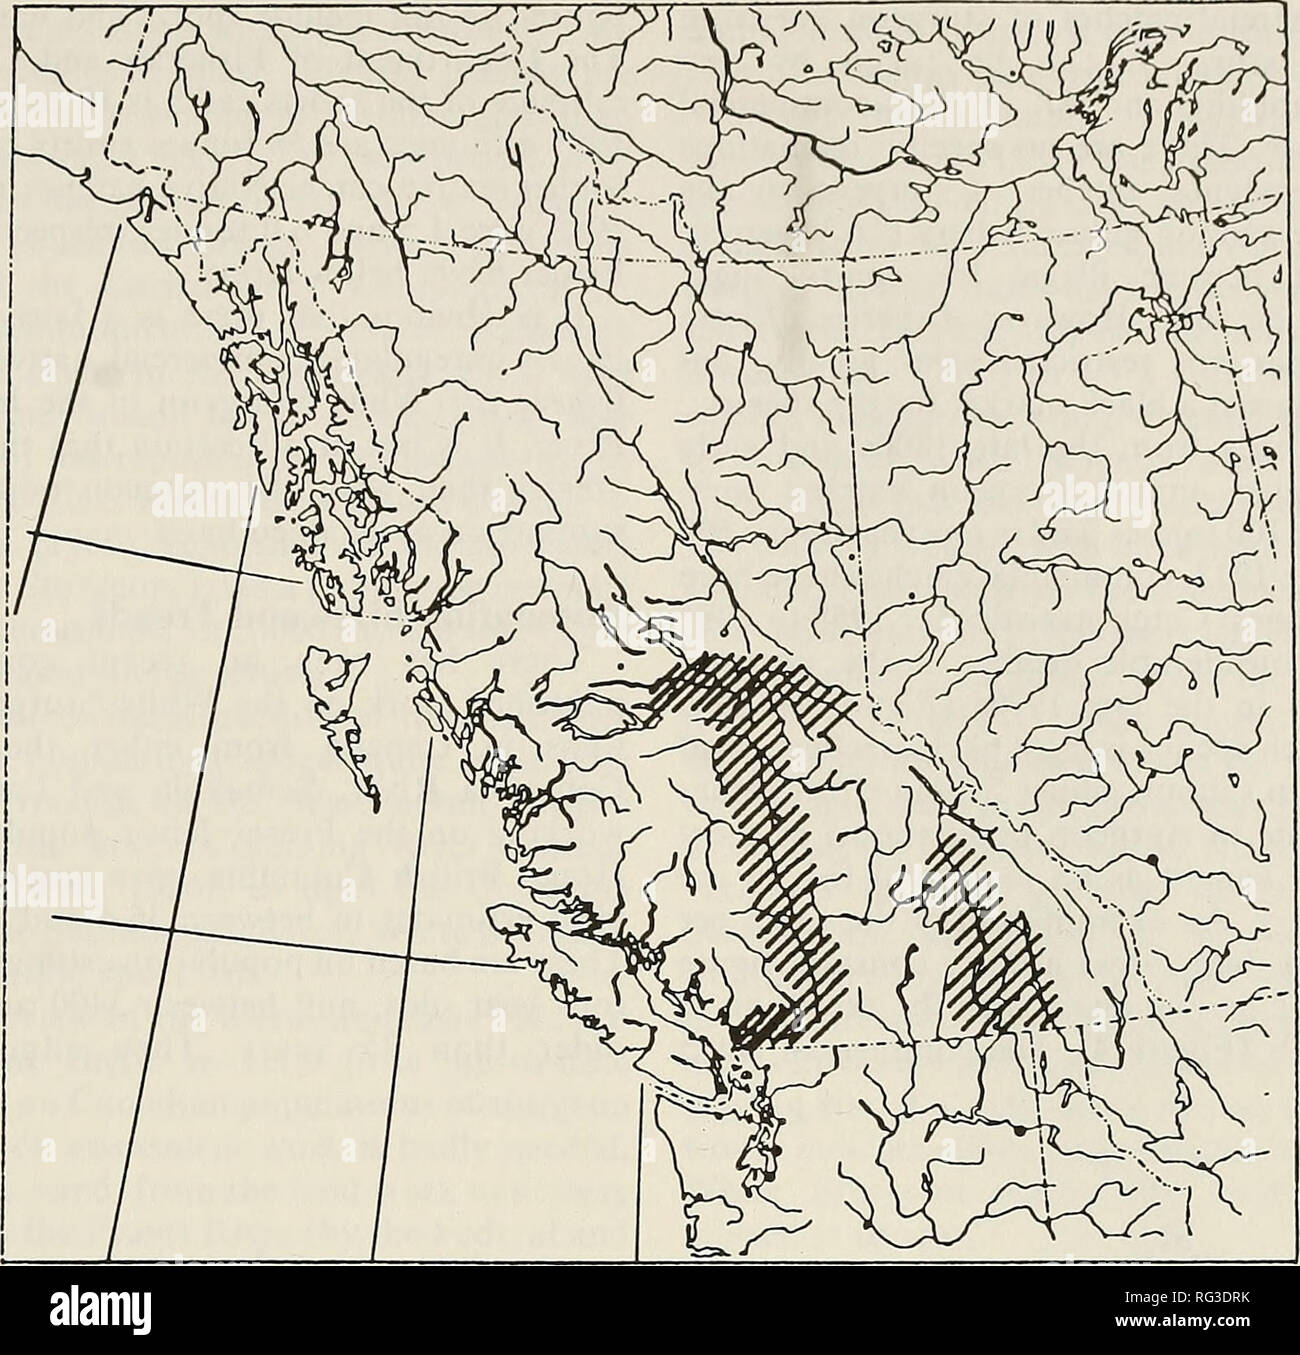 . The Canadian field-naturalist. 1991 Lane: Status of the White Sturgeon 163. Figure 3. Documented distribution of White Sturgeon in British Columbia (sources as noted in text). Most authors list the White Sturgeon as an anadromous species (Carl et al. 1959; Scott and Crossman 1973; and others); but with the exception of the San Francisco Bay area, there is only one published marine record of the species (Chadwick 1959). Galbraith, King and Kreitman (personal communications) relate that sturgeon are taken fairly often in the ocean off the mouth of the Columbia River. There are no reports of Wh - Stock Image